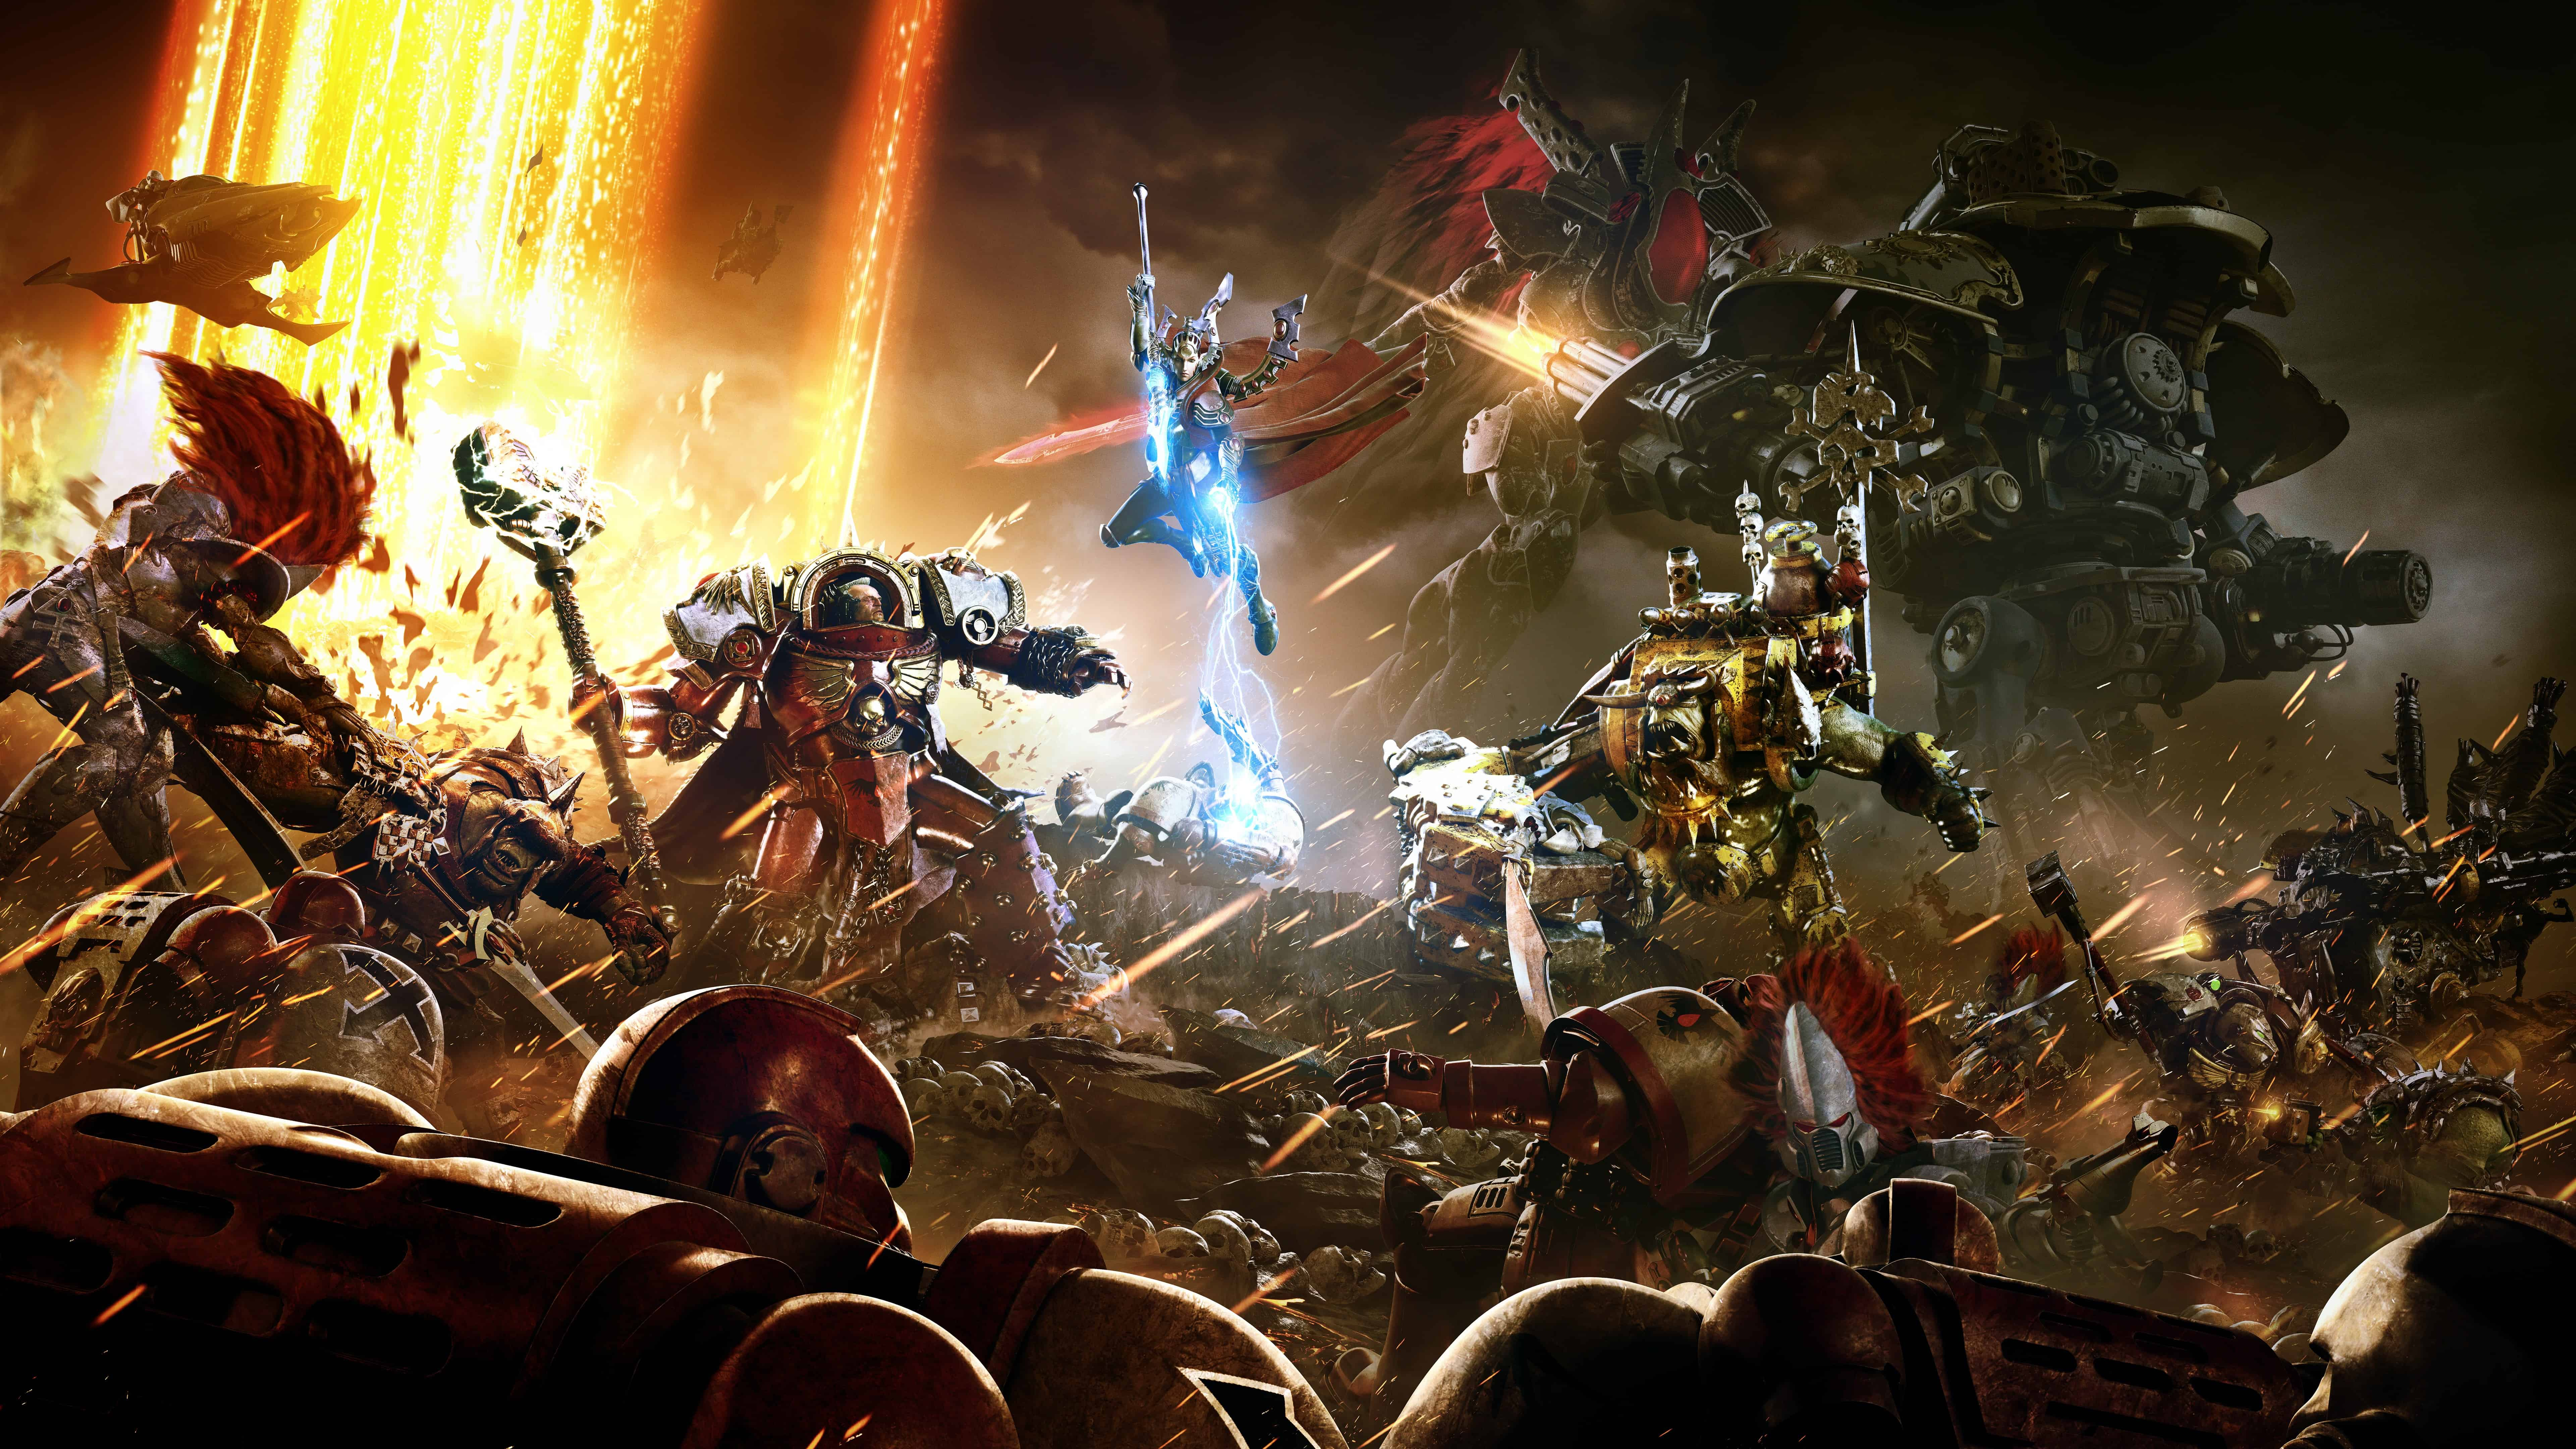 Www Hd Wallpaper Com Nature Warhammer 40k Dawn Of War Iii Uhd 8k Wallpaper Pixelz